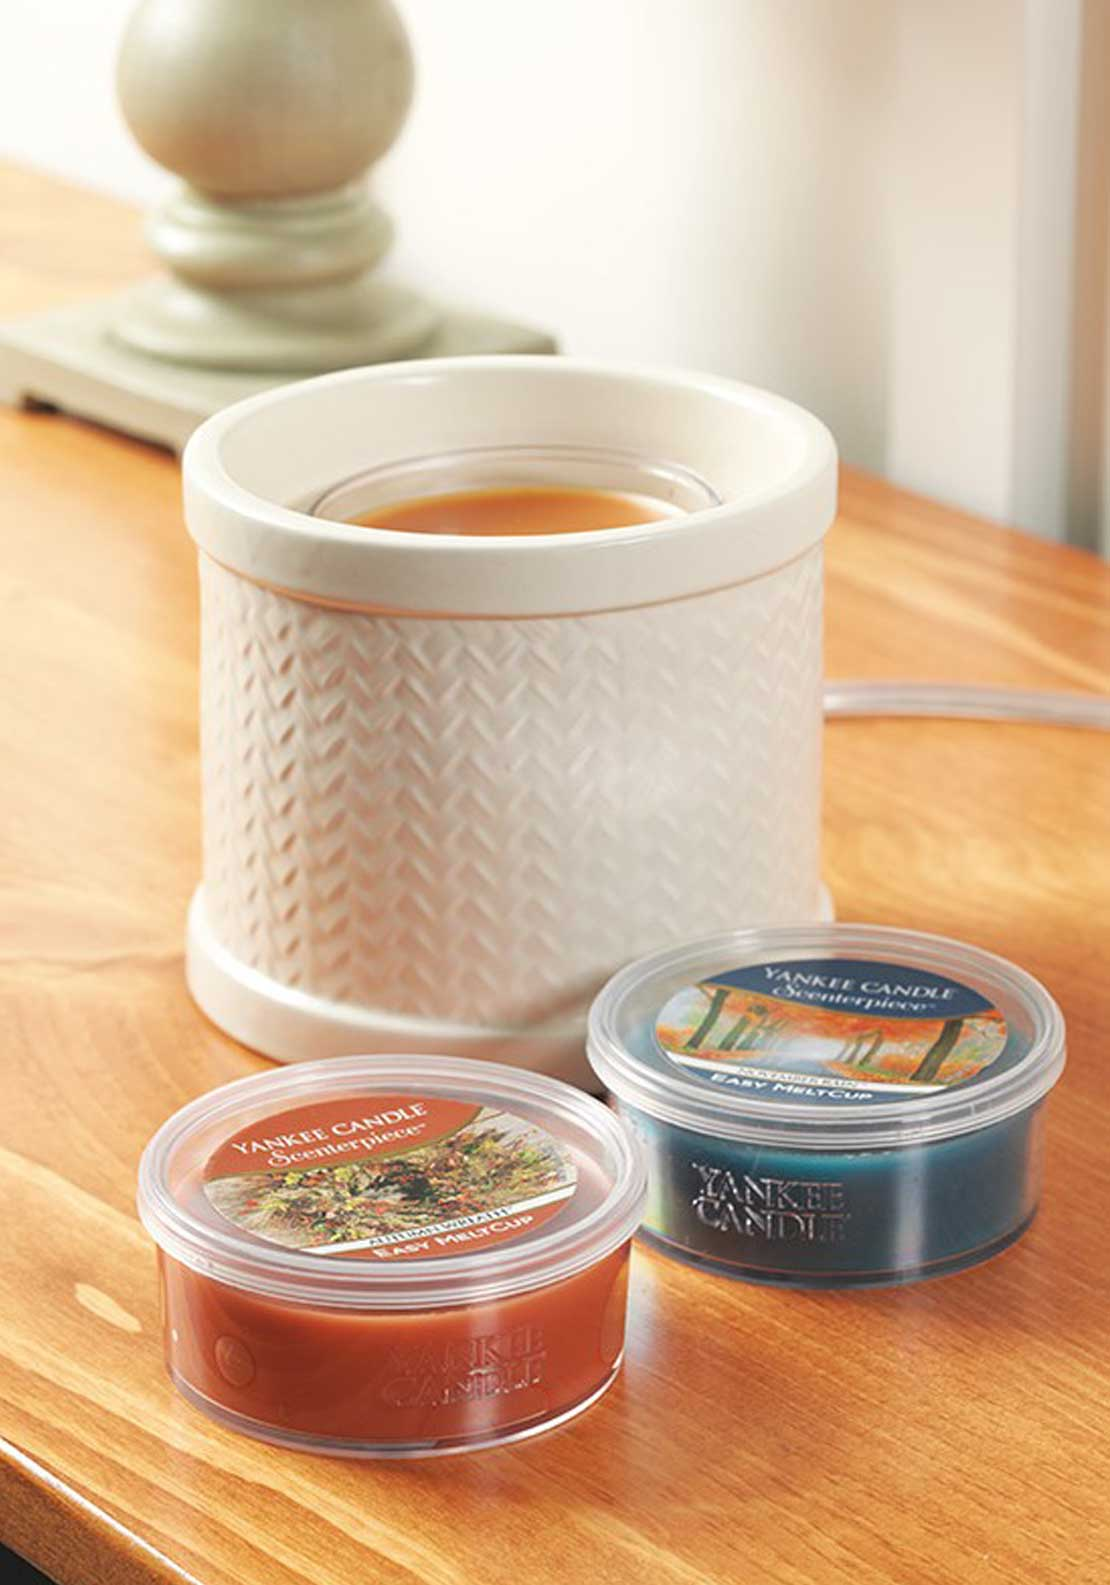 Yankee Candle Scenterpiece Weave Easy Meltcup Warmer